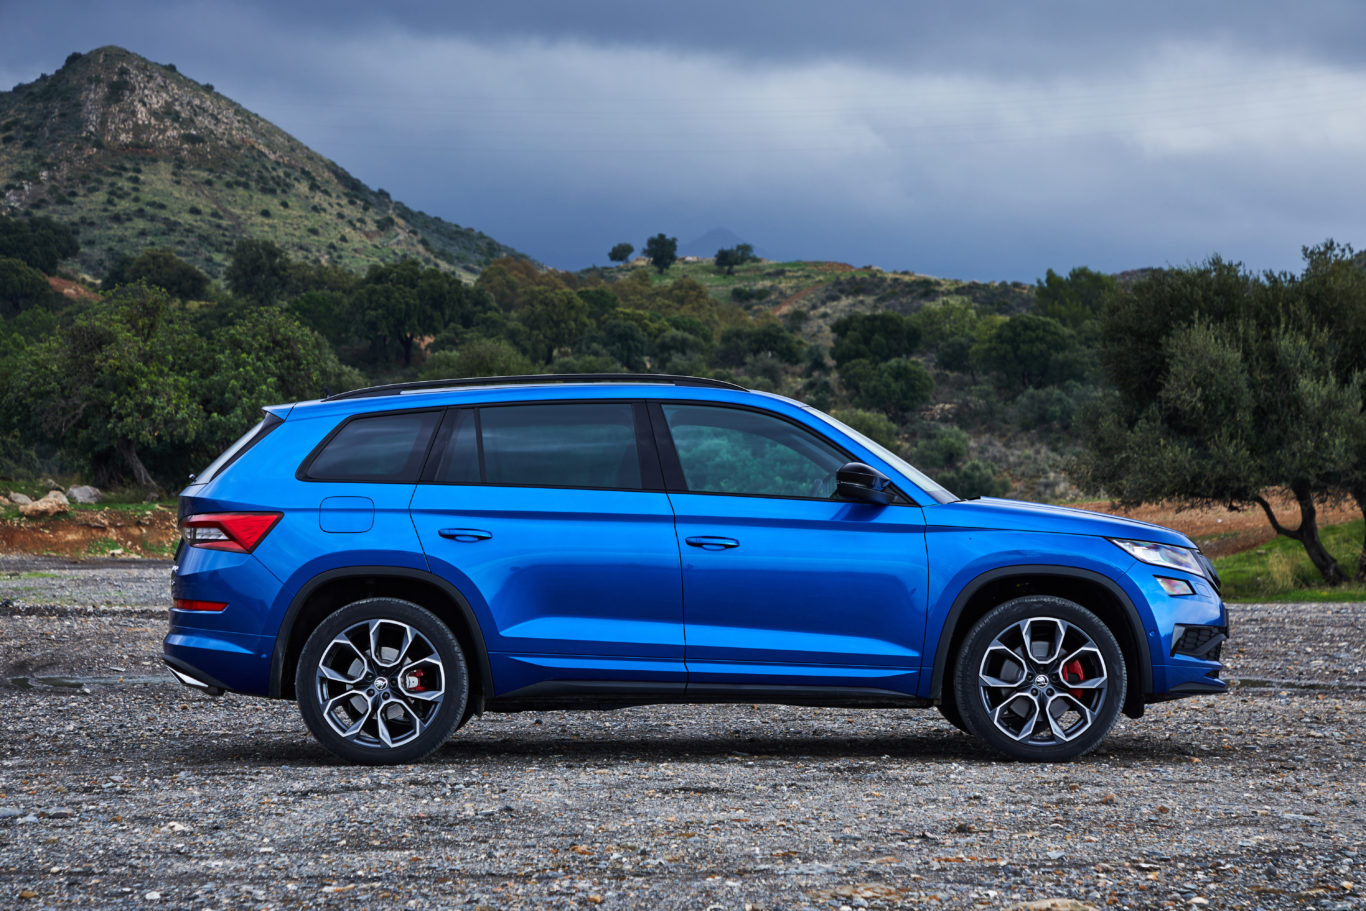 First Drive The Skoda Kodiaq Vrs Is A Refreshingly Understated Take